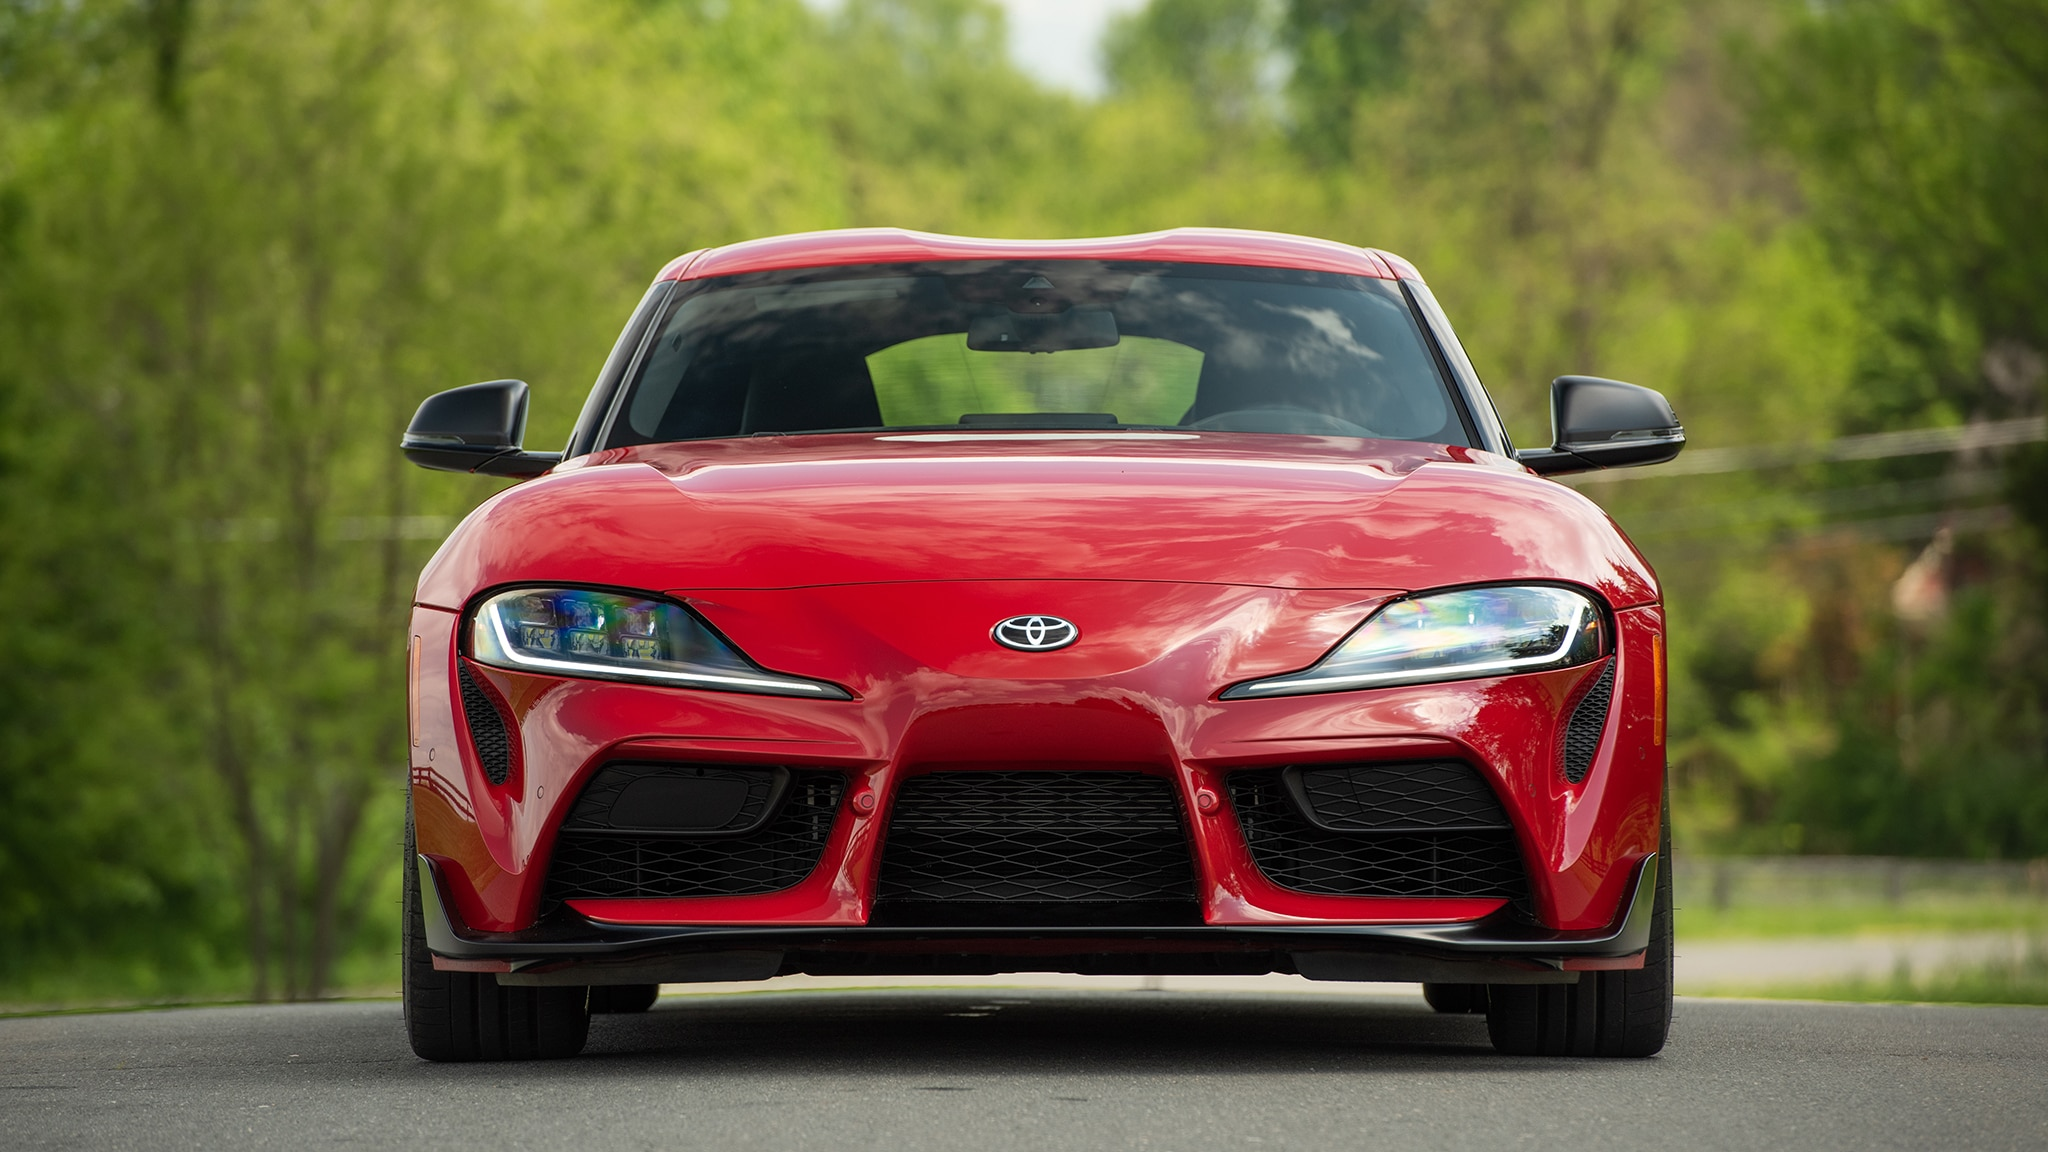 2020 Toyota Supra First Drive Review: It's as Real as It Gets